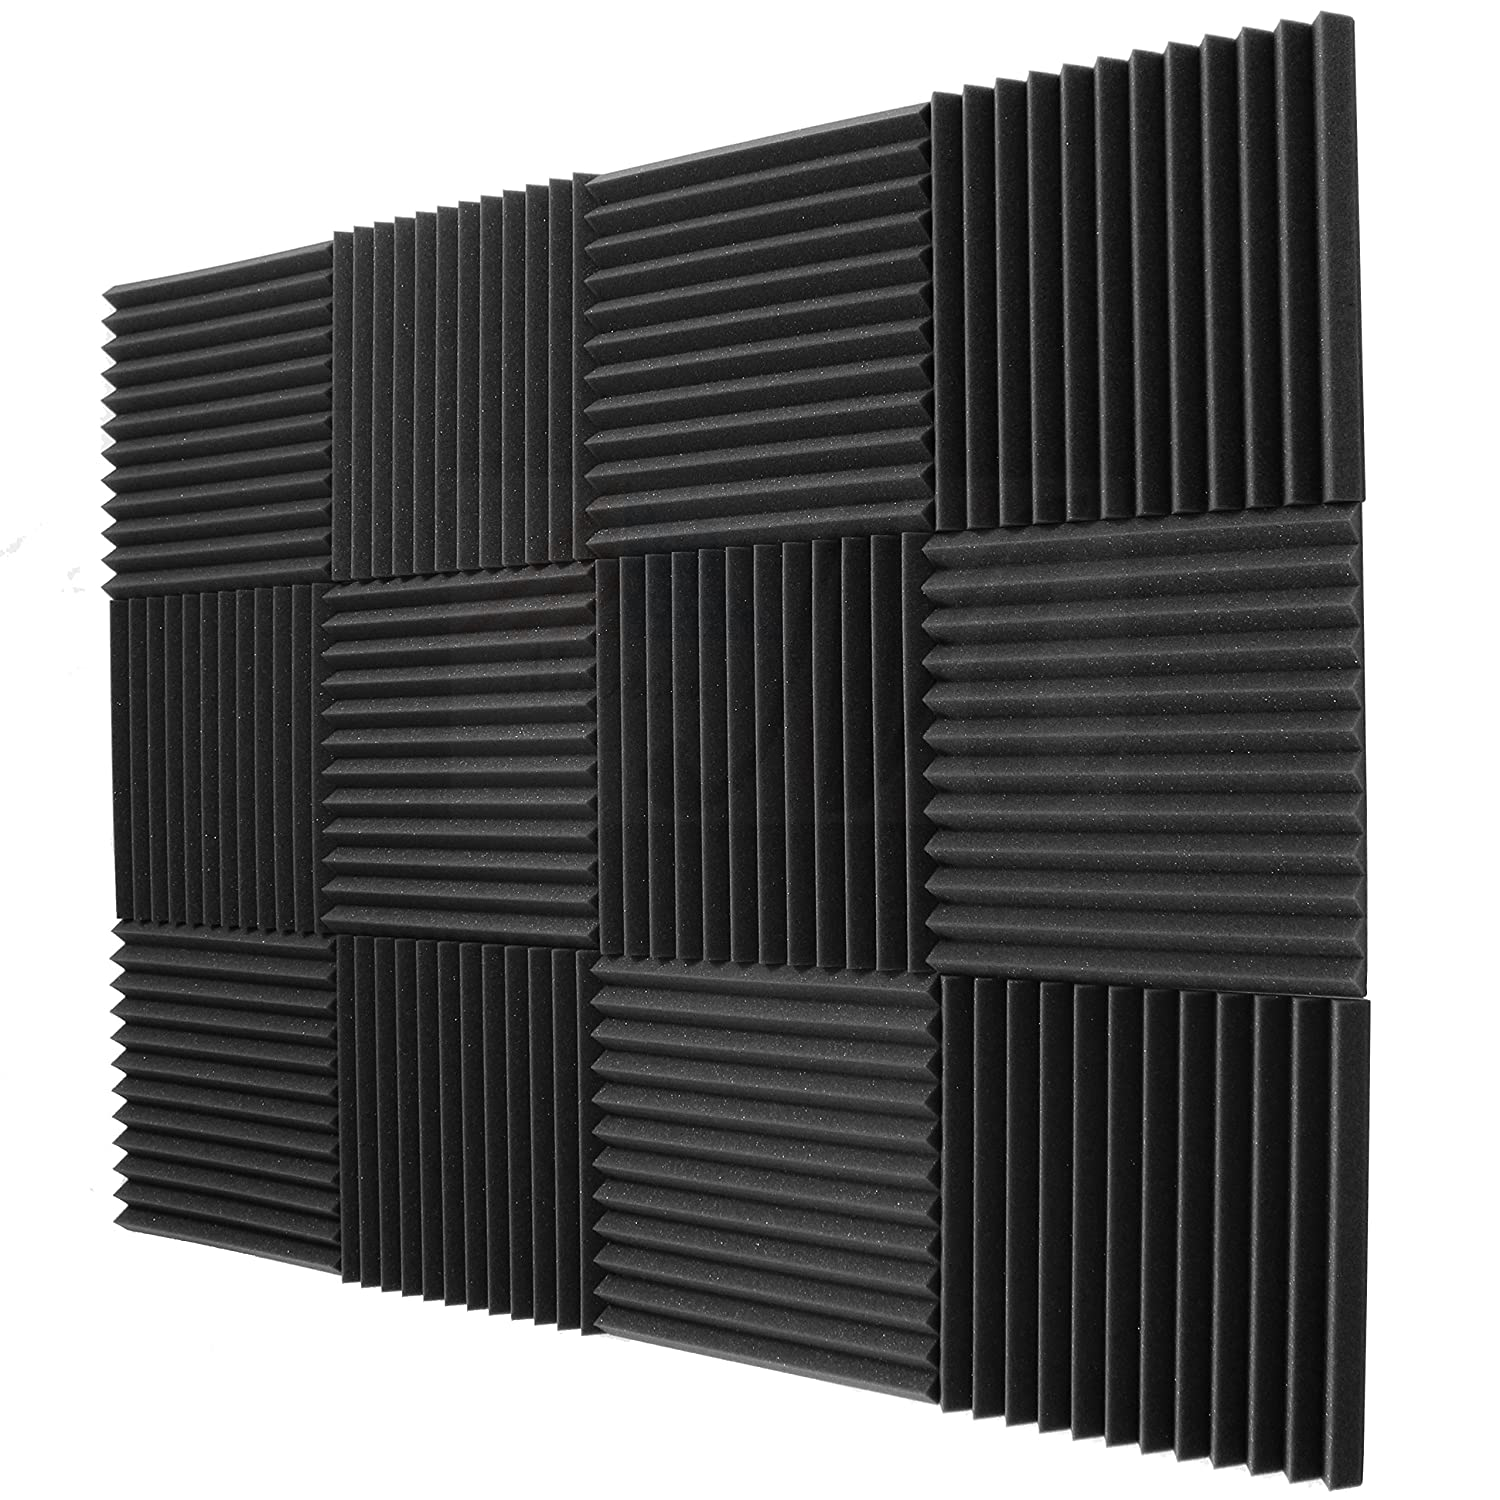 Wall Soundproofing Material : Things under every music lover needs features